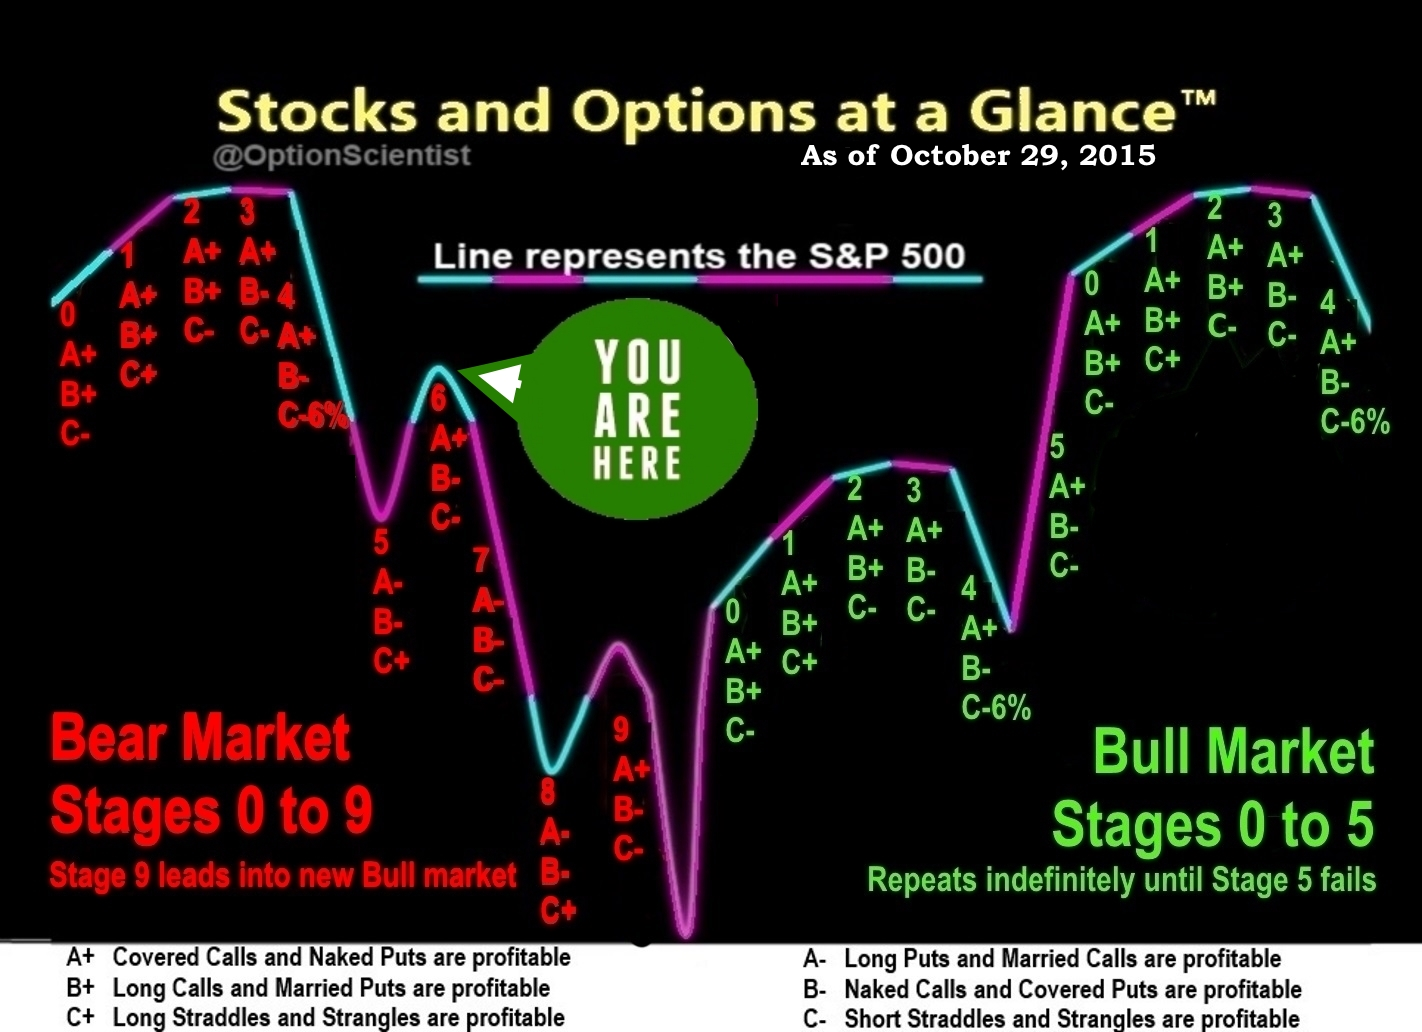 Stocks and Options at a Glance 10-29-15